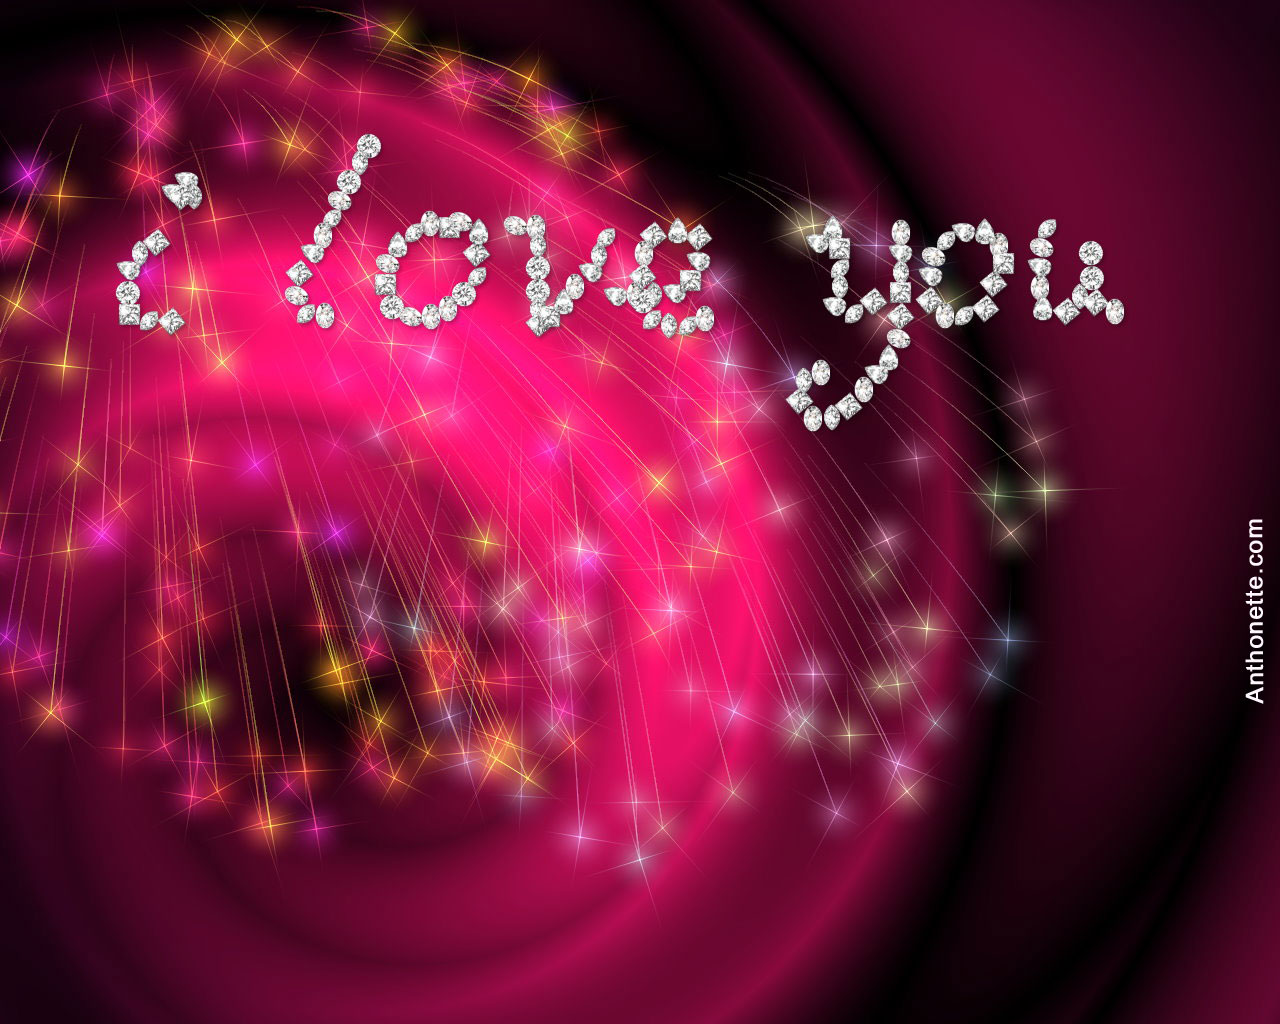 I Love You Images Hd: Love You Wallpapers HD